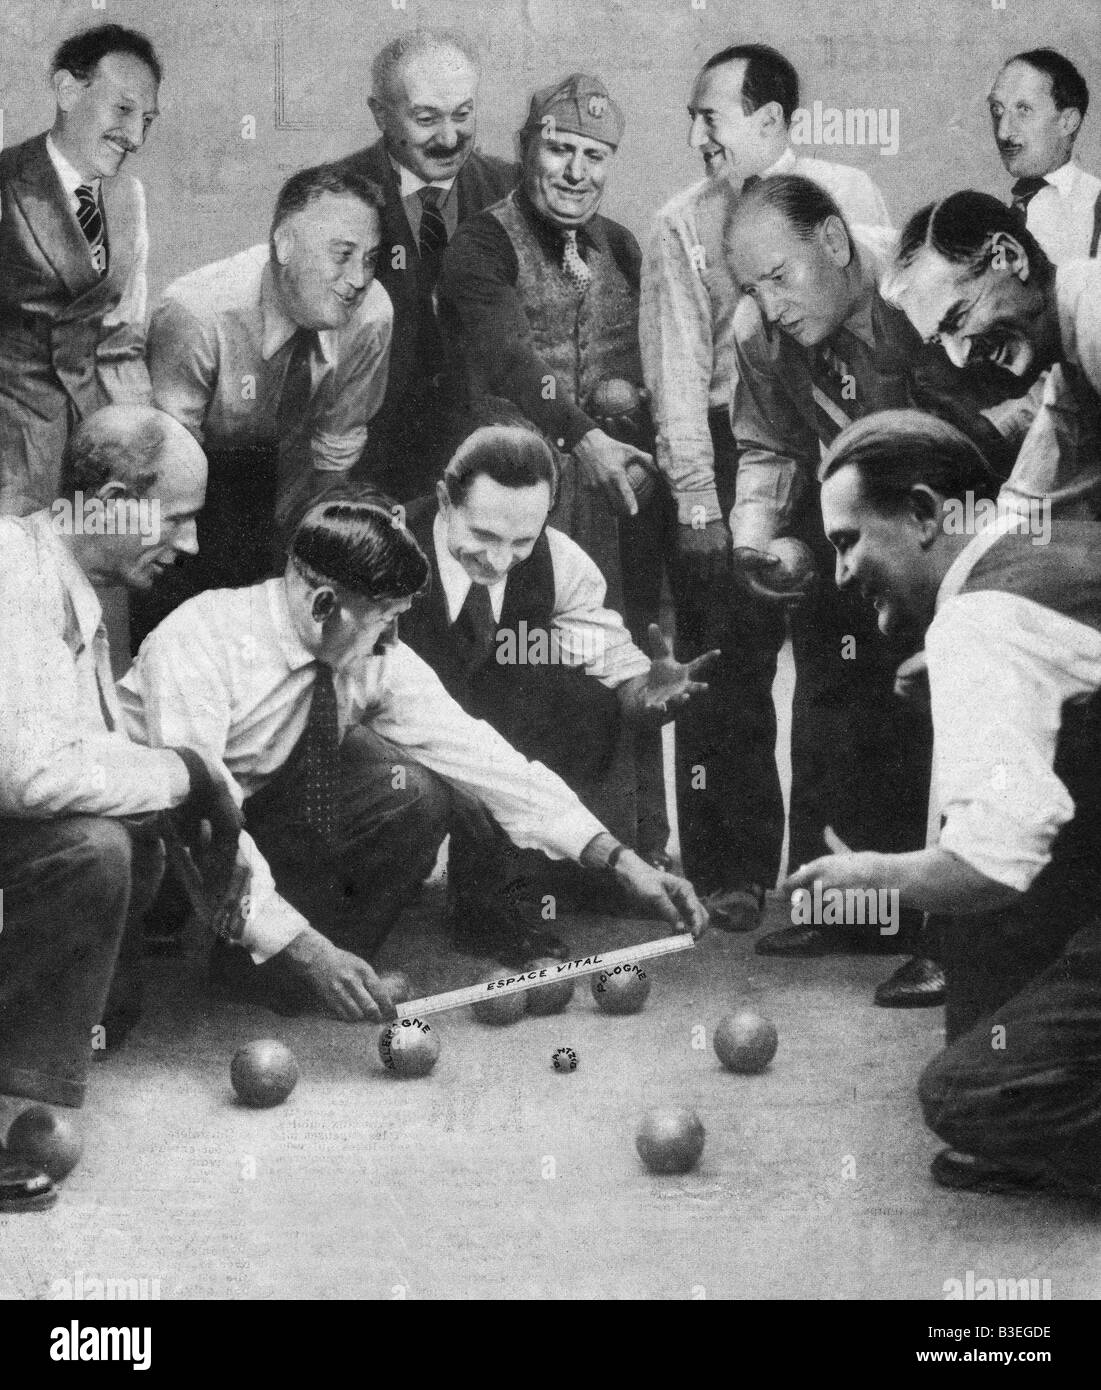 Boule-game, Caricature, August 1939 - Stock Image